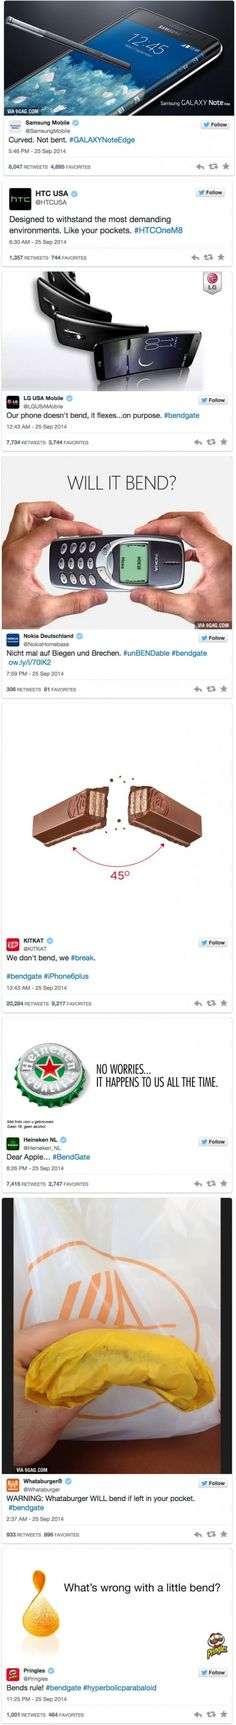 How Nokia, Samsung, LG, KitKat And Other Brands Reacted To Apple's iPhone 6 Bendgate